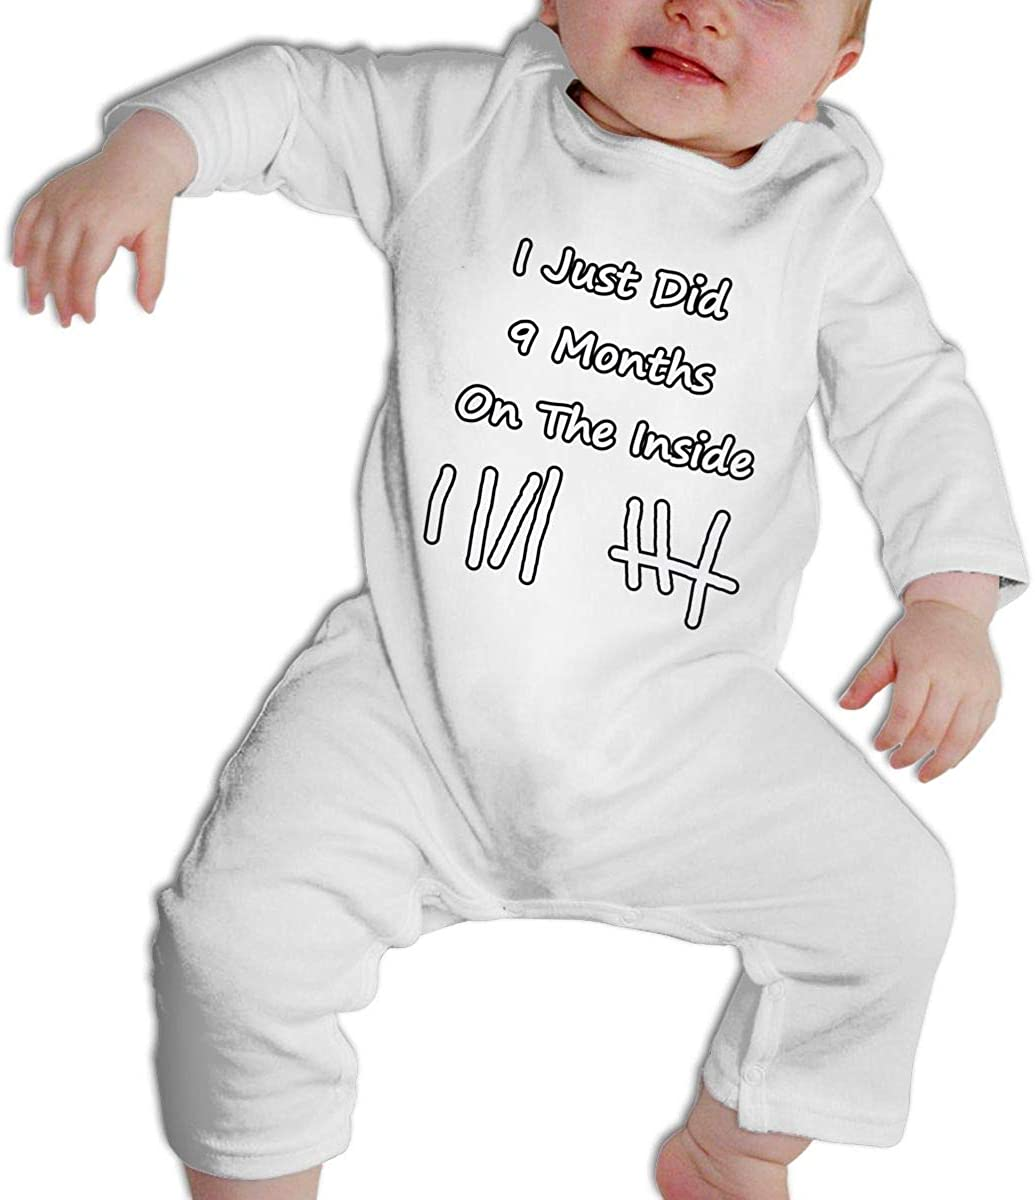 SDHEIJKY I Just Did 9 Months On The Inside Baby Girls Boys Long-Sleeve Bodysuits Onesies Comfy Cotton Infant Outfits